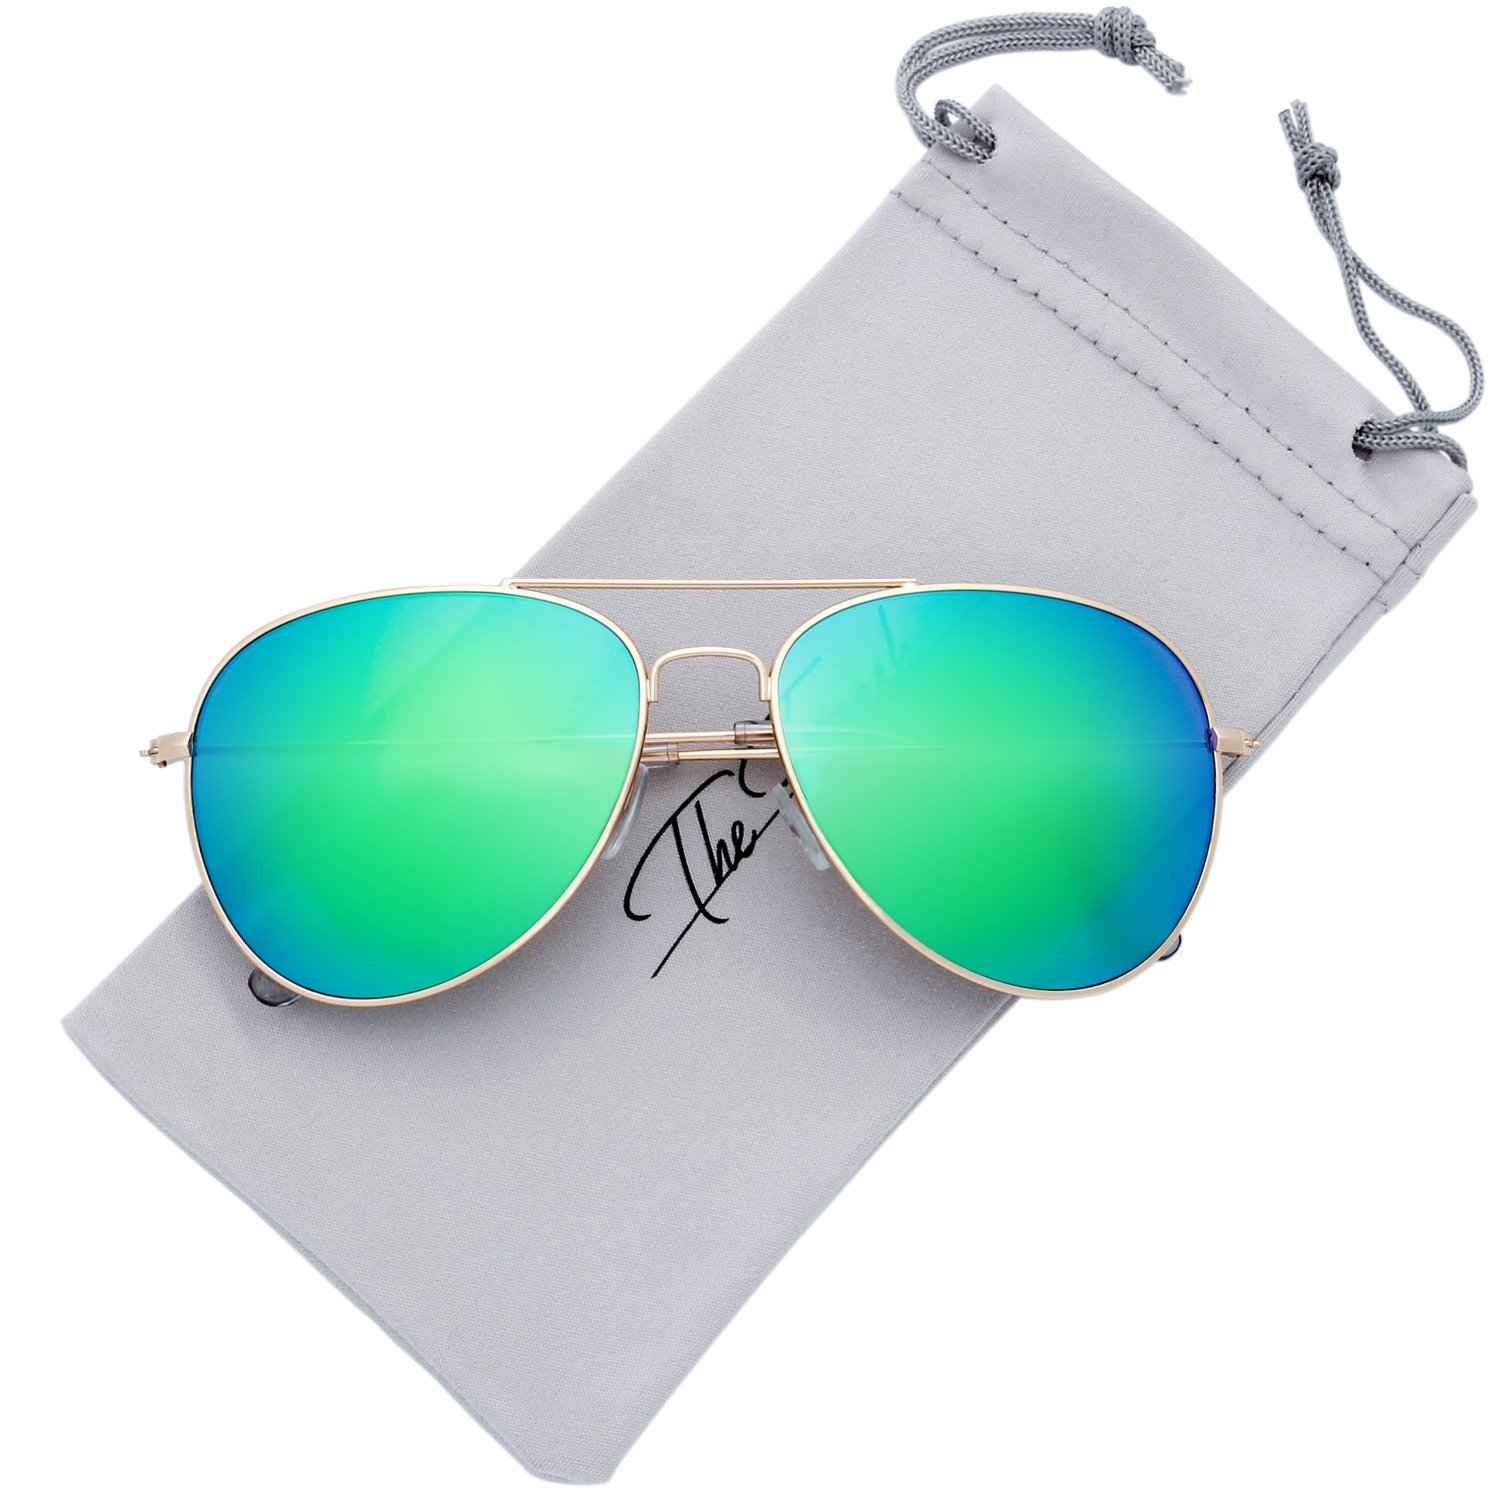 The Fresh Classic Large Metal Frame Mirror Lens Aviator Sunglasses with Gift Box (GOLD, GREEN)